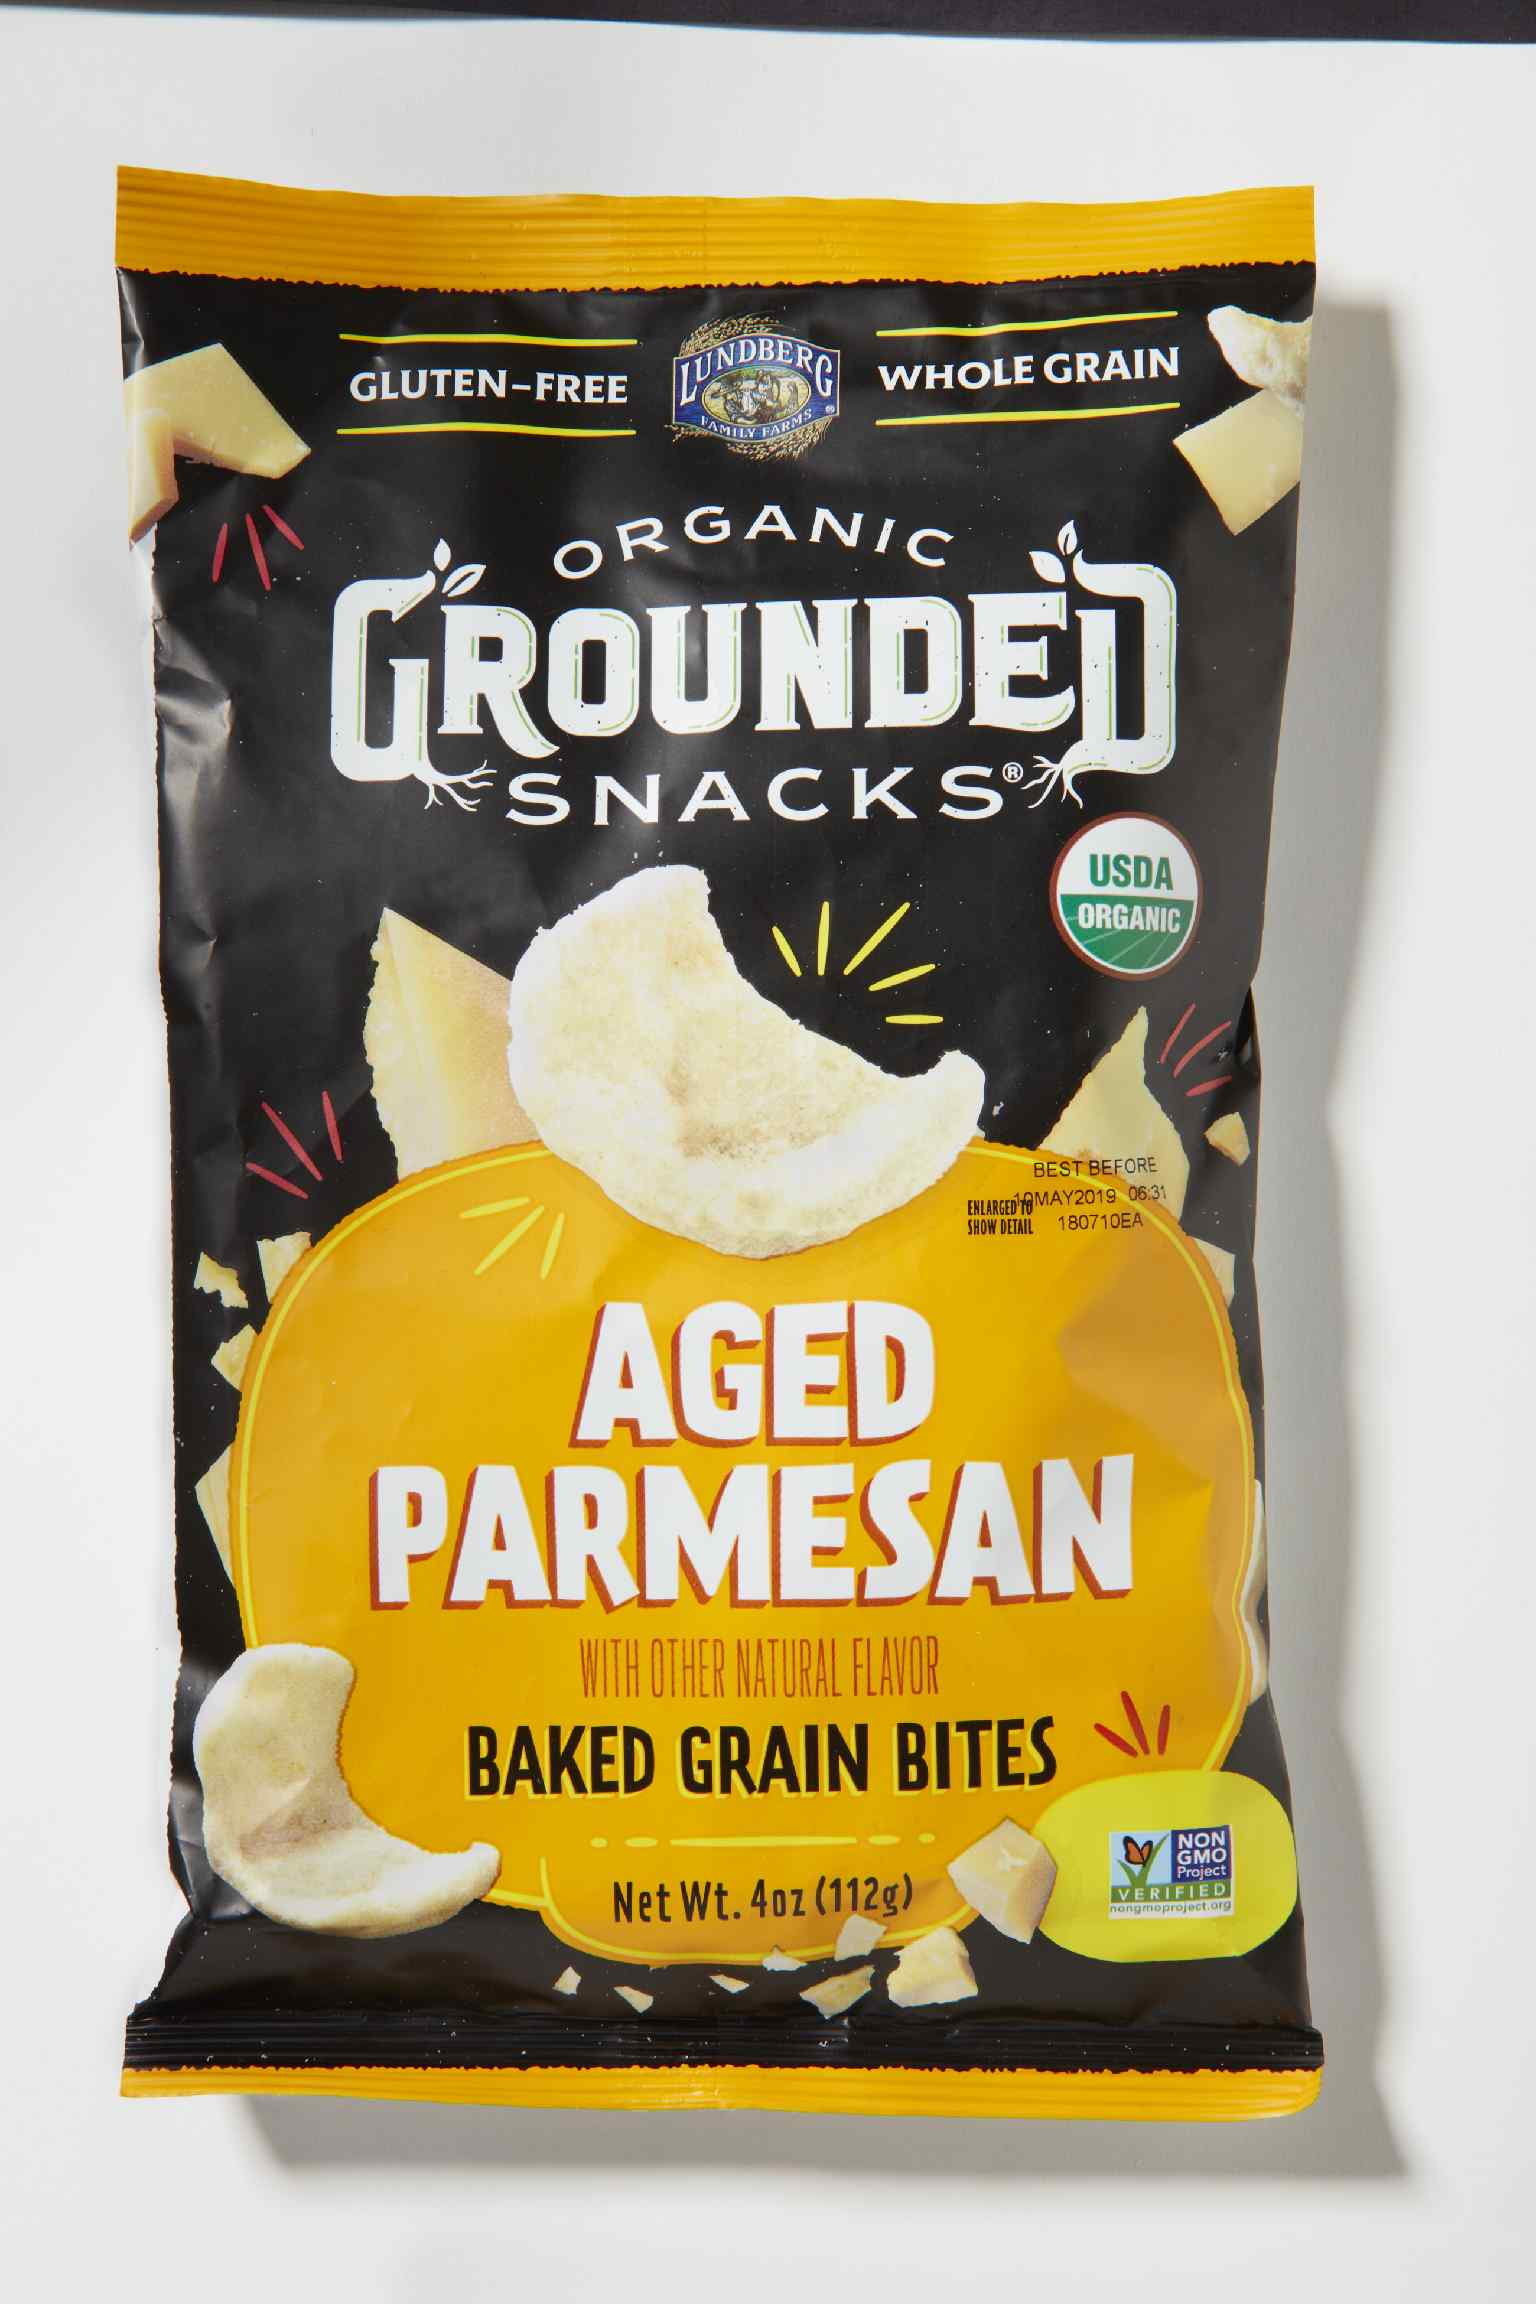 Lundberg Organic Grounded Snacks Baked Grain Bites